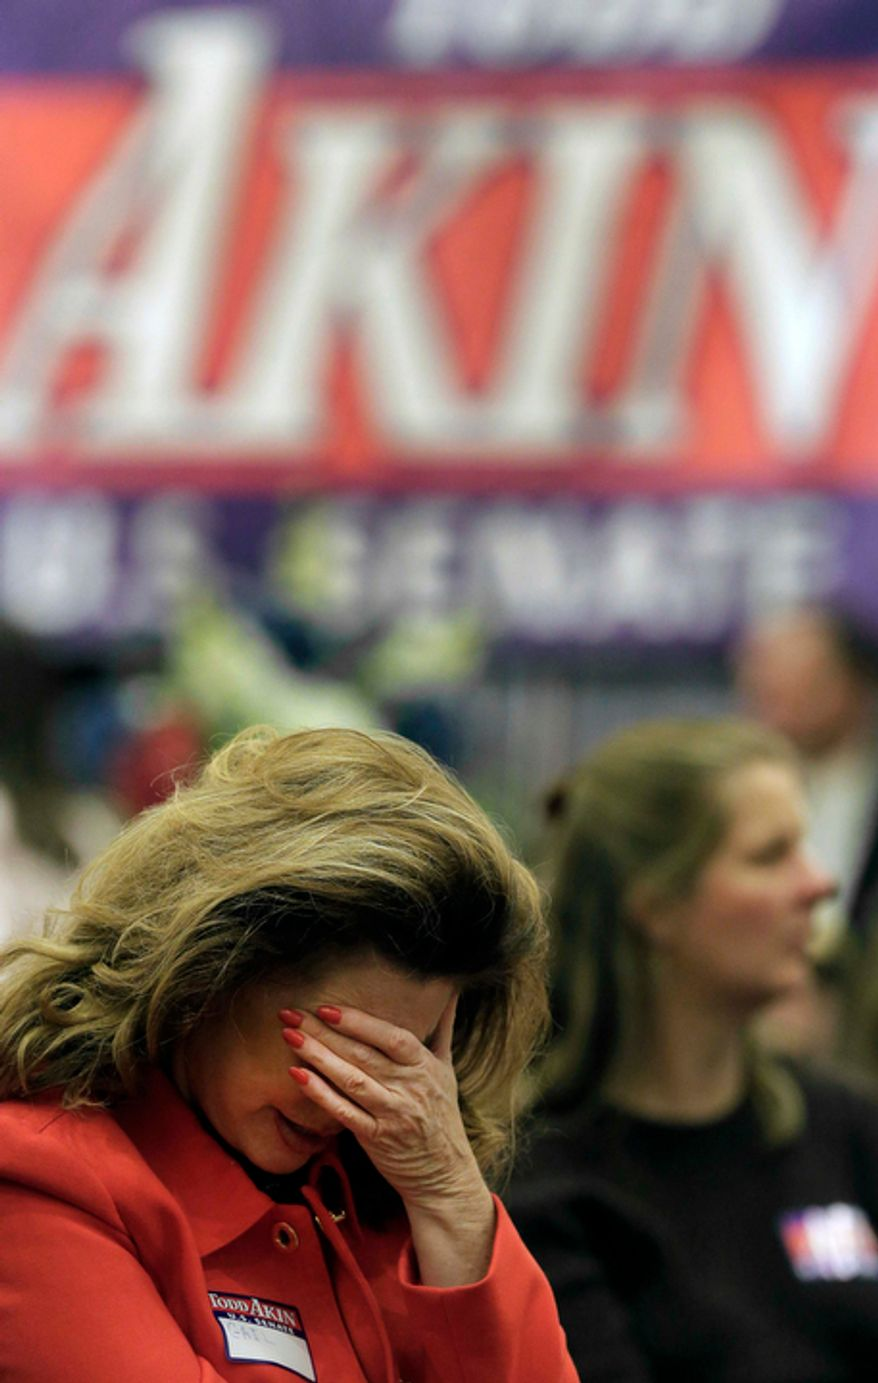 Gail Bowman of St. Louis reacts Nov. 6, 2012, after hearing that Todd Akin, Republican candidate for U.S. Senate in Missouri, lost to Democratic incumbent Claire McCaskill during Akin's watch party in Chesterfield, Mo. (Associated Press)